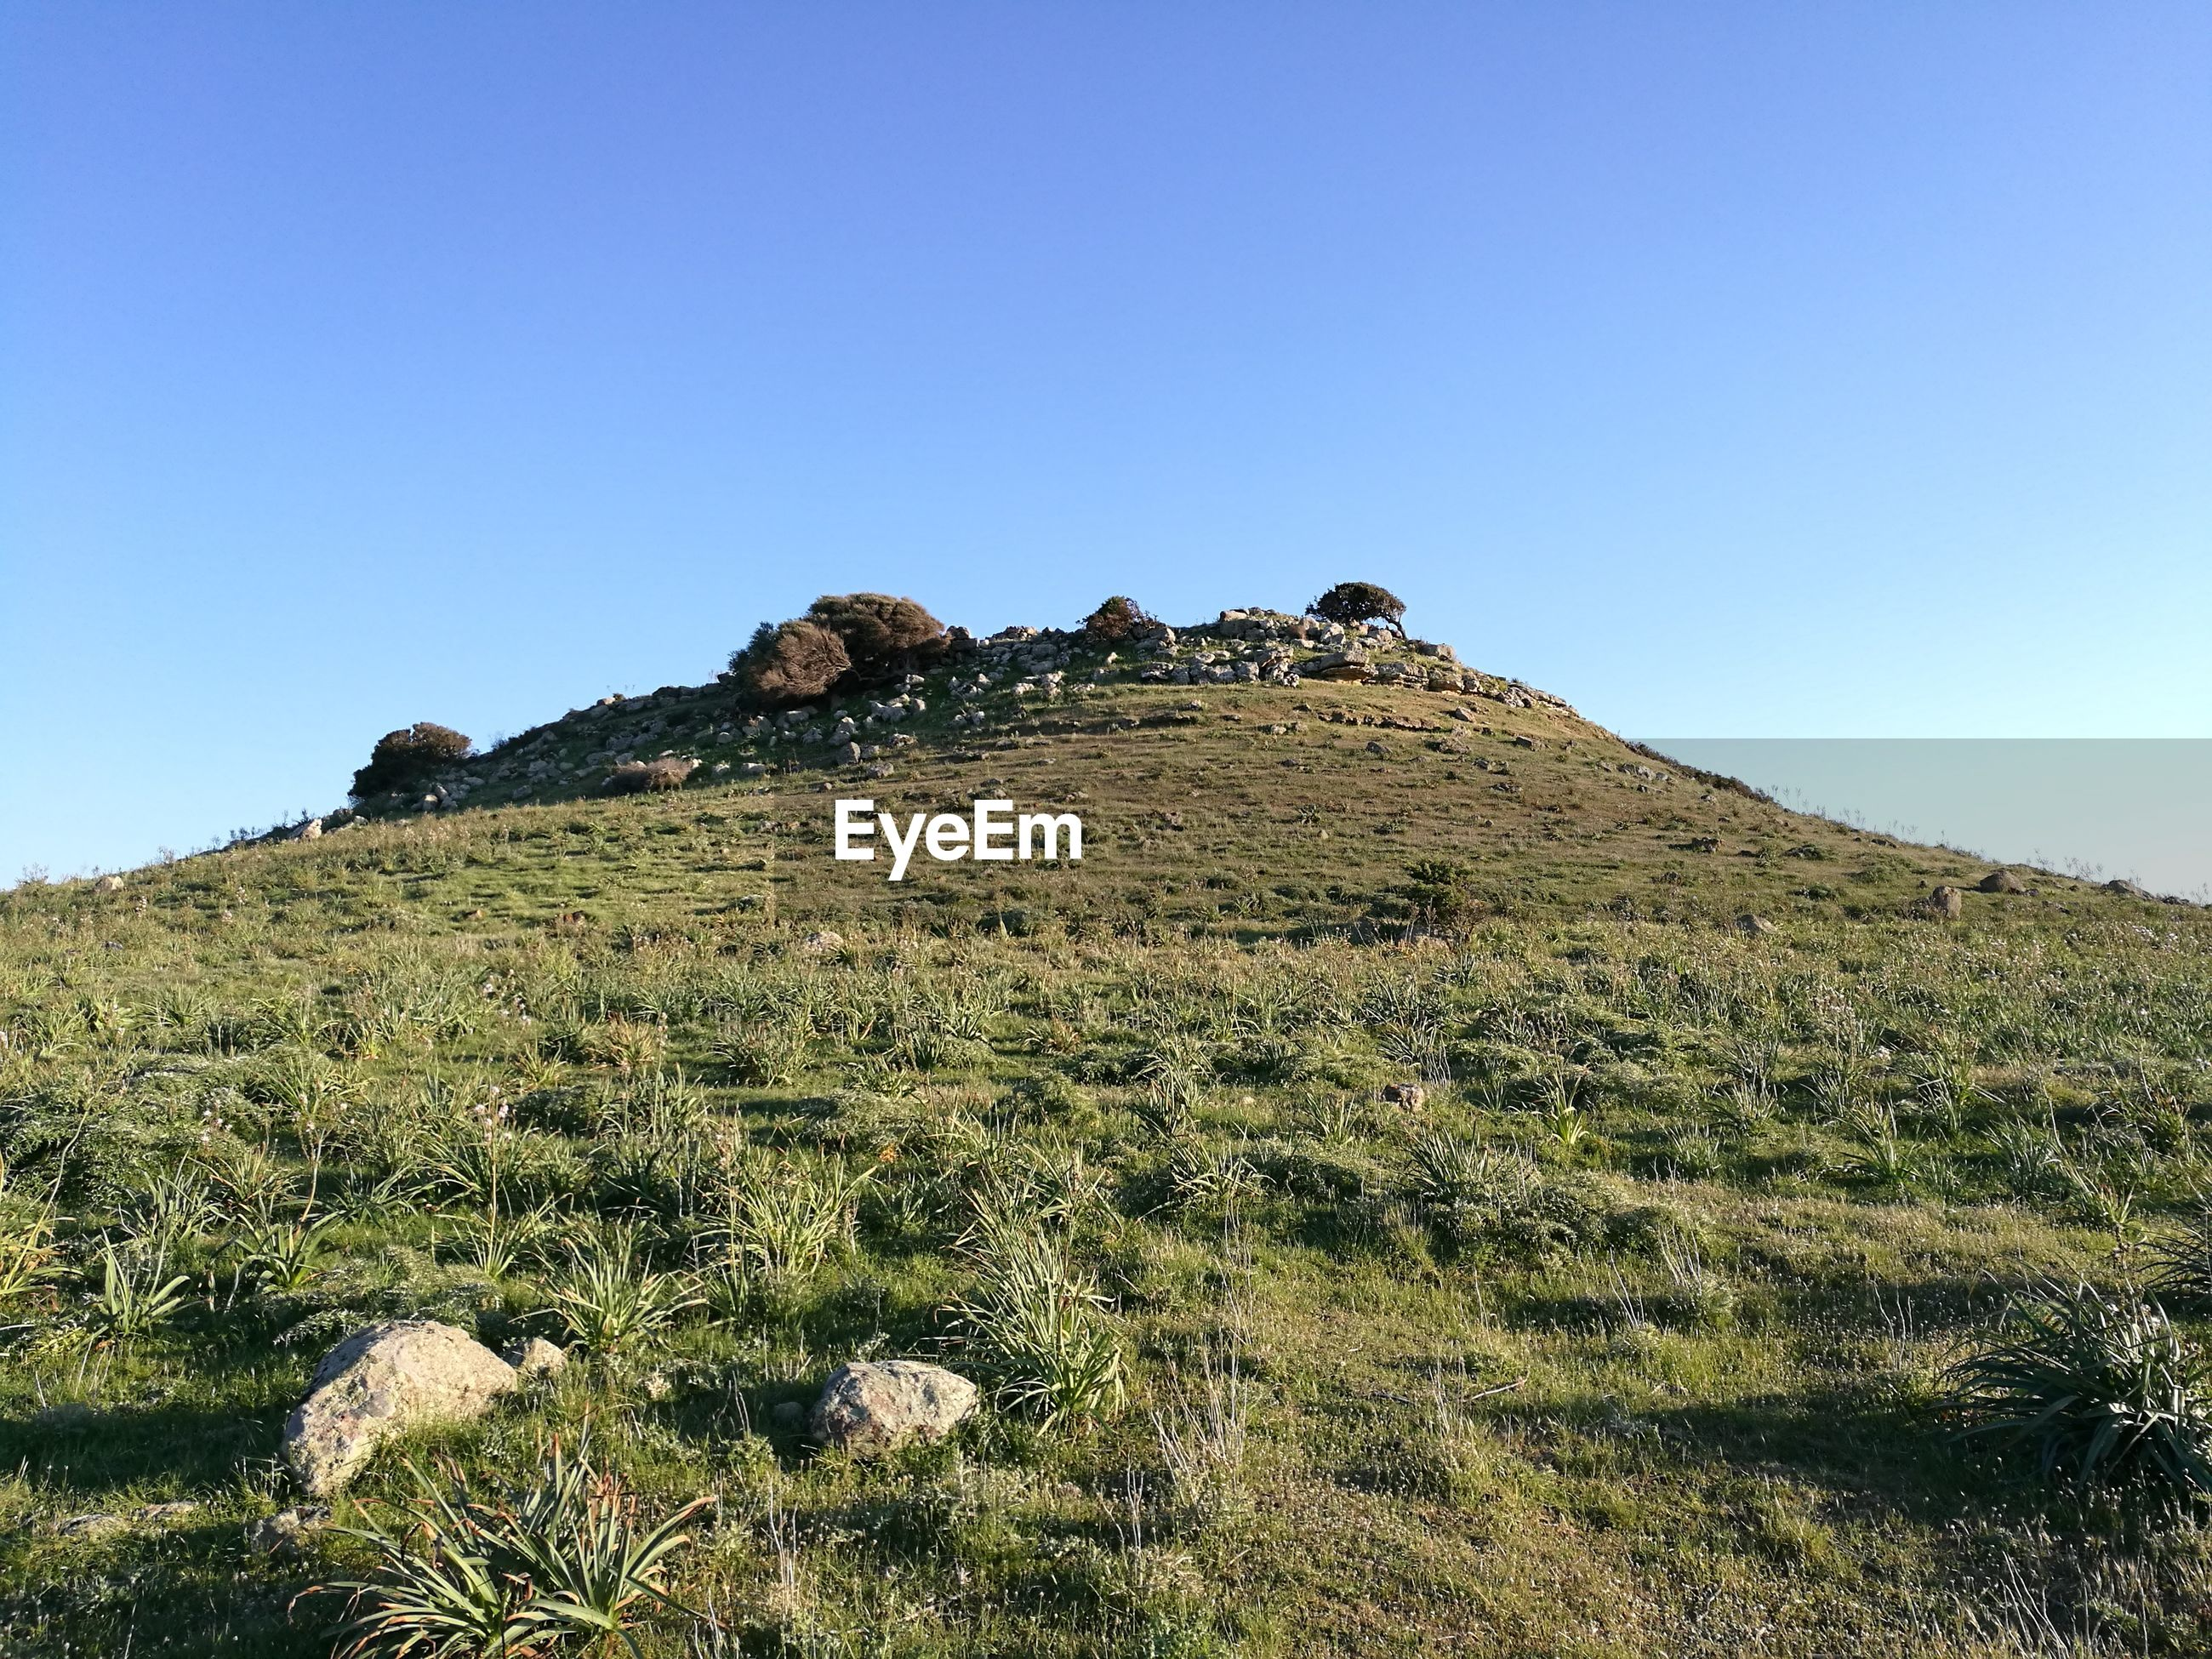 LOW ANGLE VIEW OF ROCKS ON MOUNTAIN AGAINST CLEAR BLUE SKY